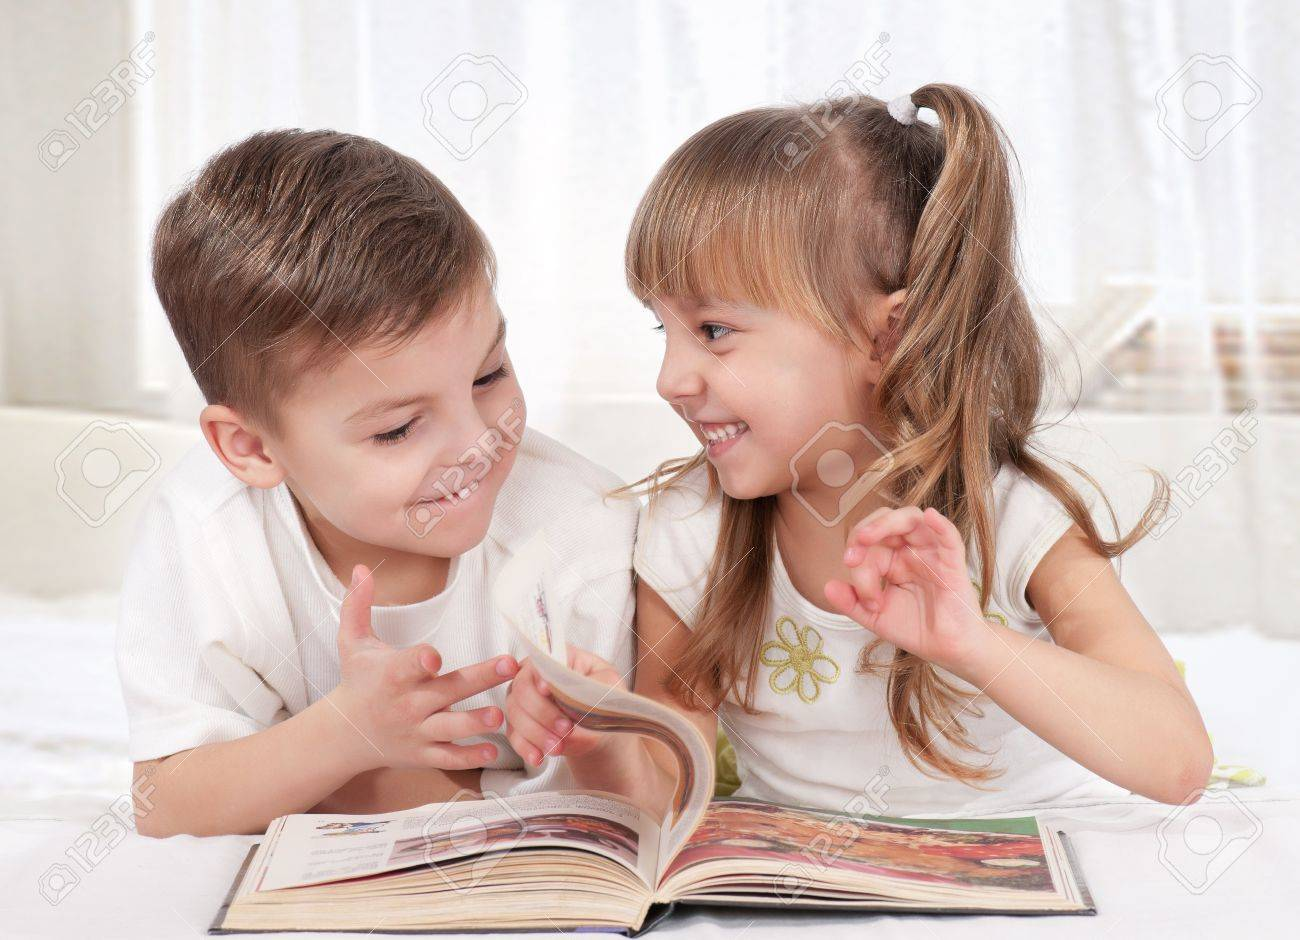 Lovely children - brother and sister, reading a book, on the bed Stock Photo - 9104254